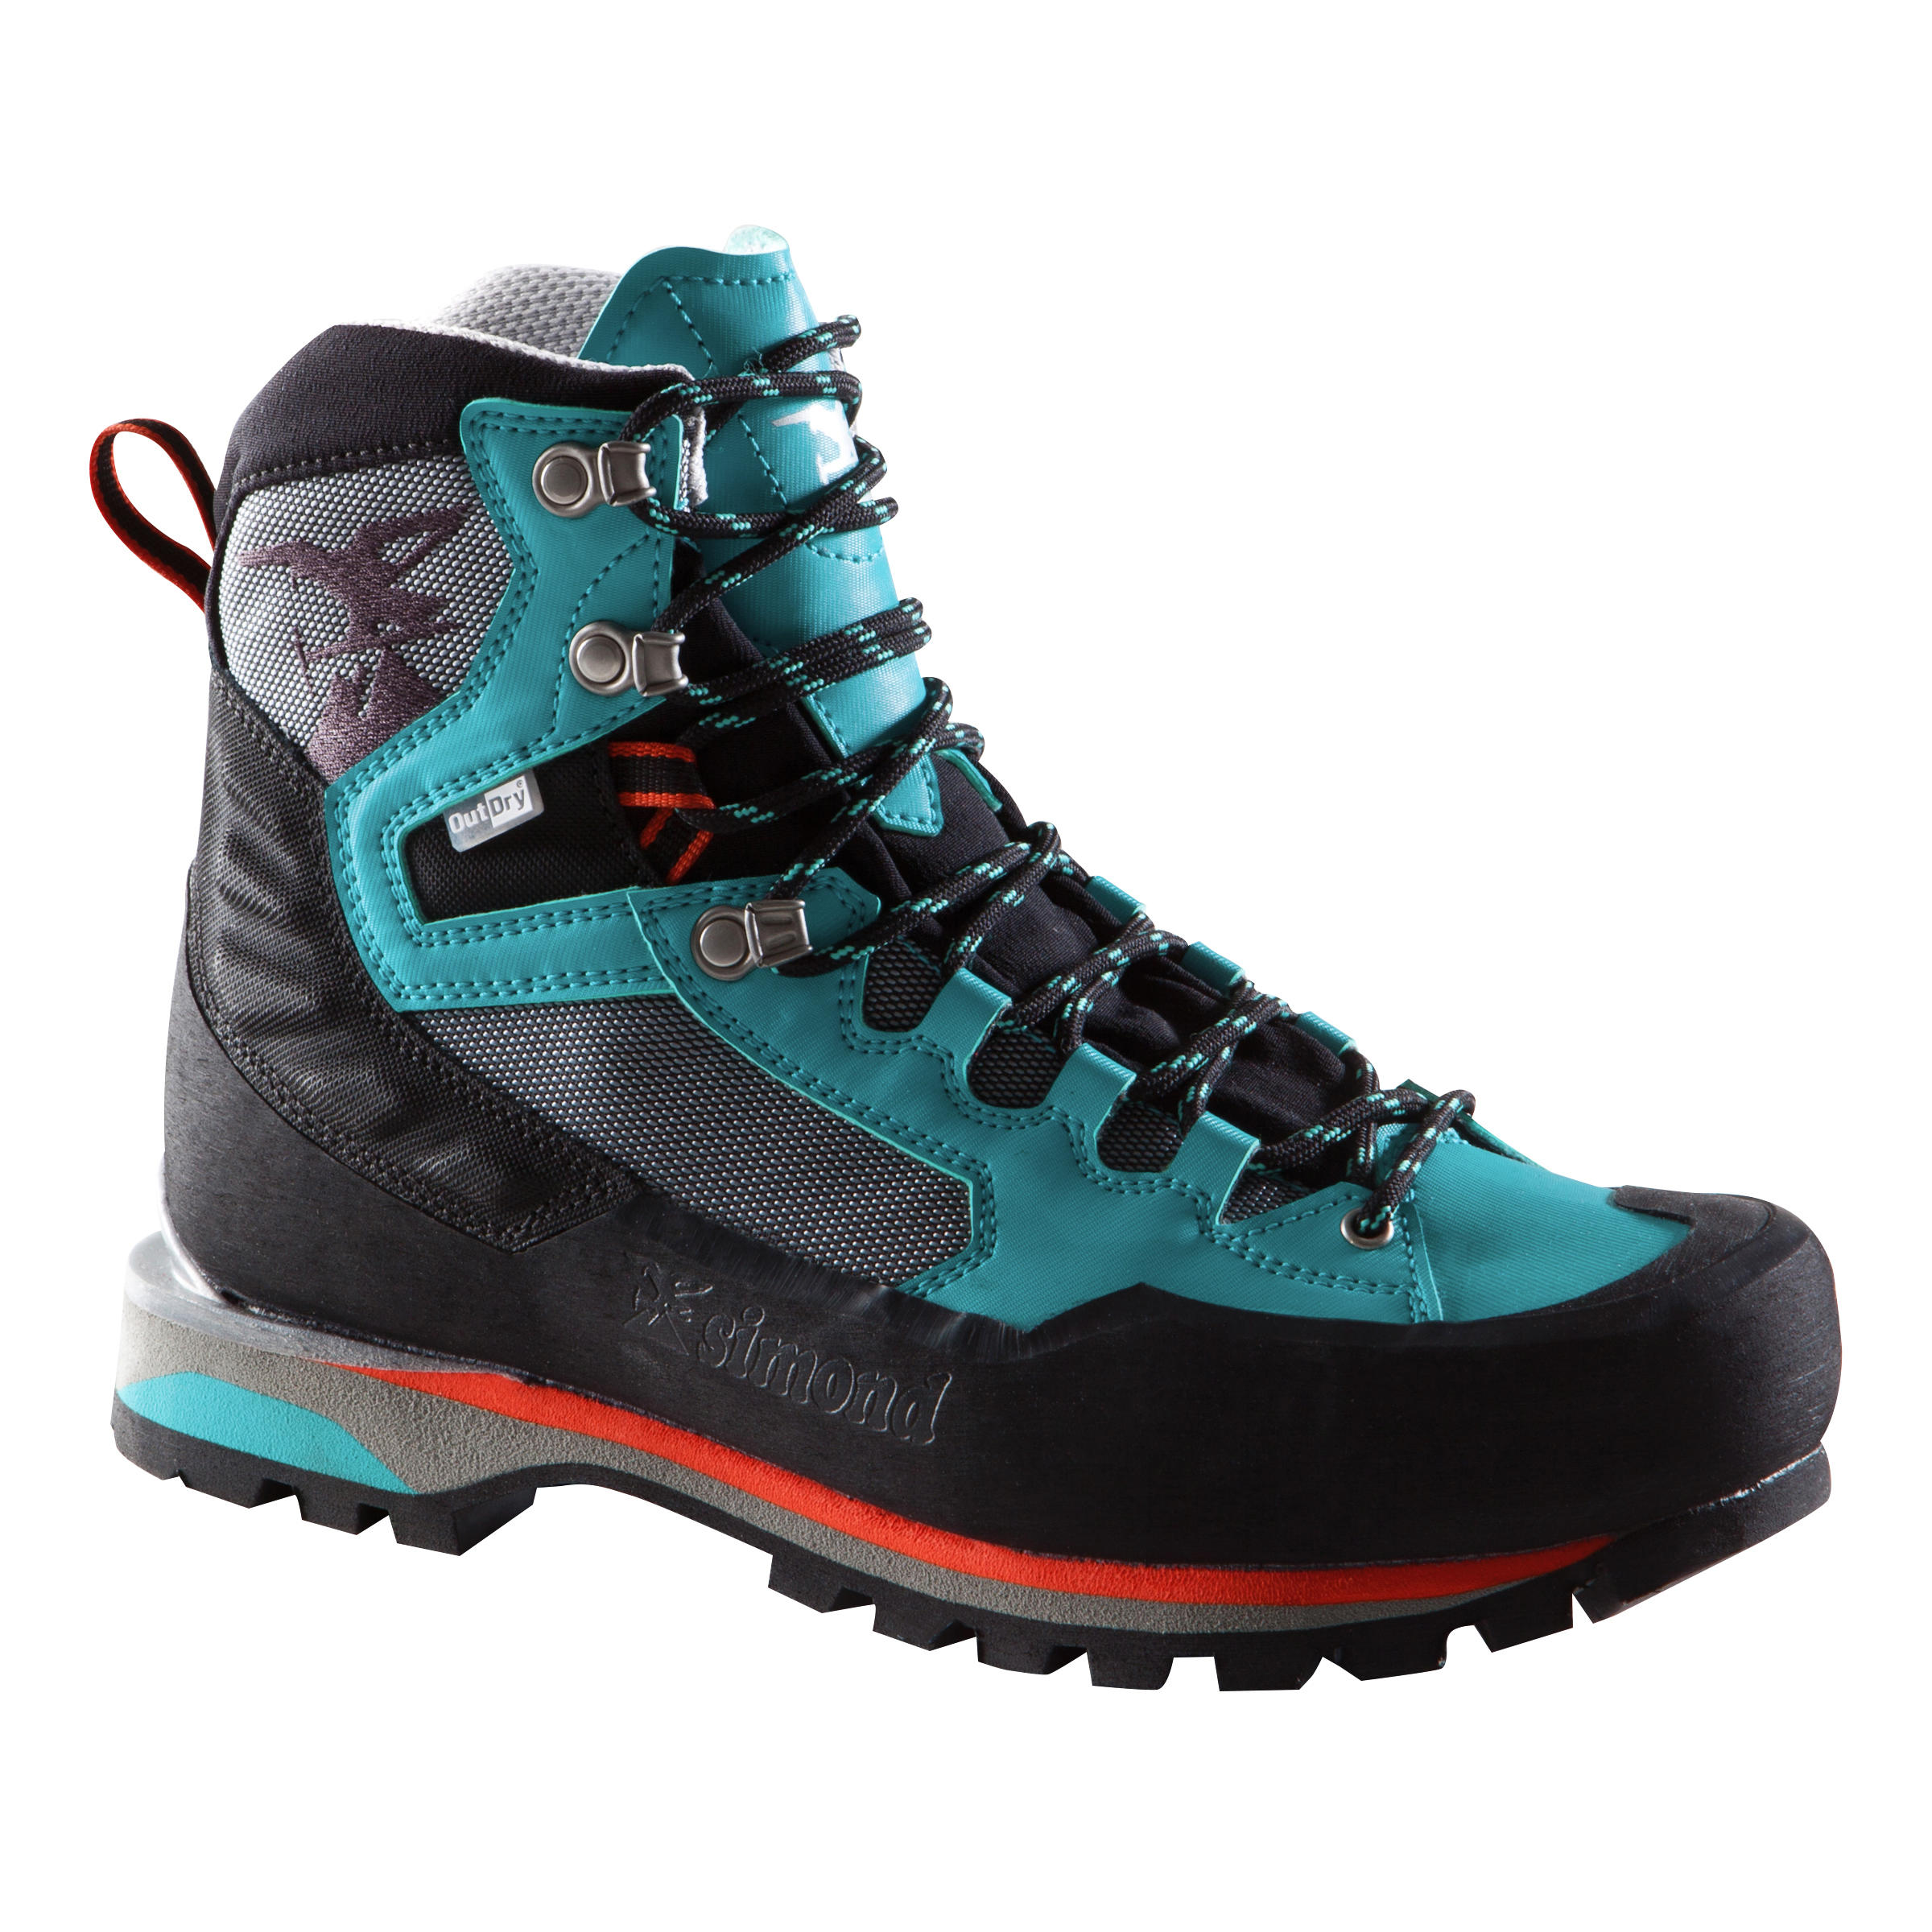 Simond Schoenen Alpinism Light heren